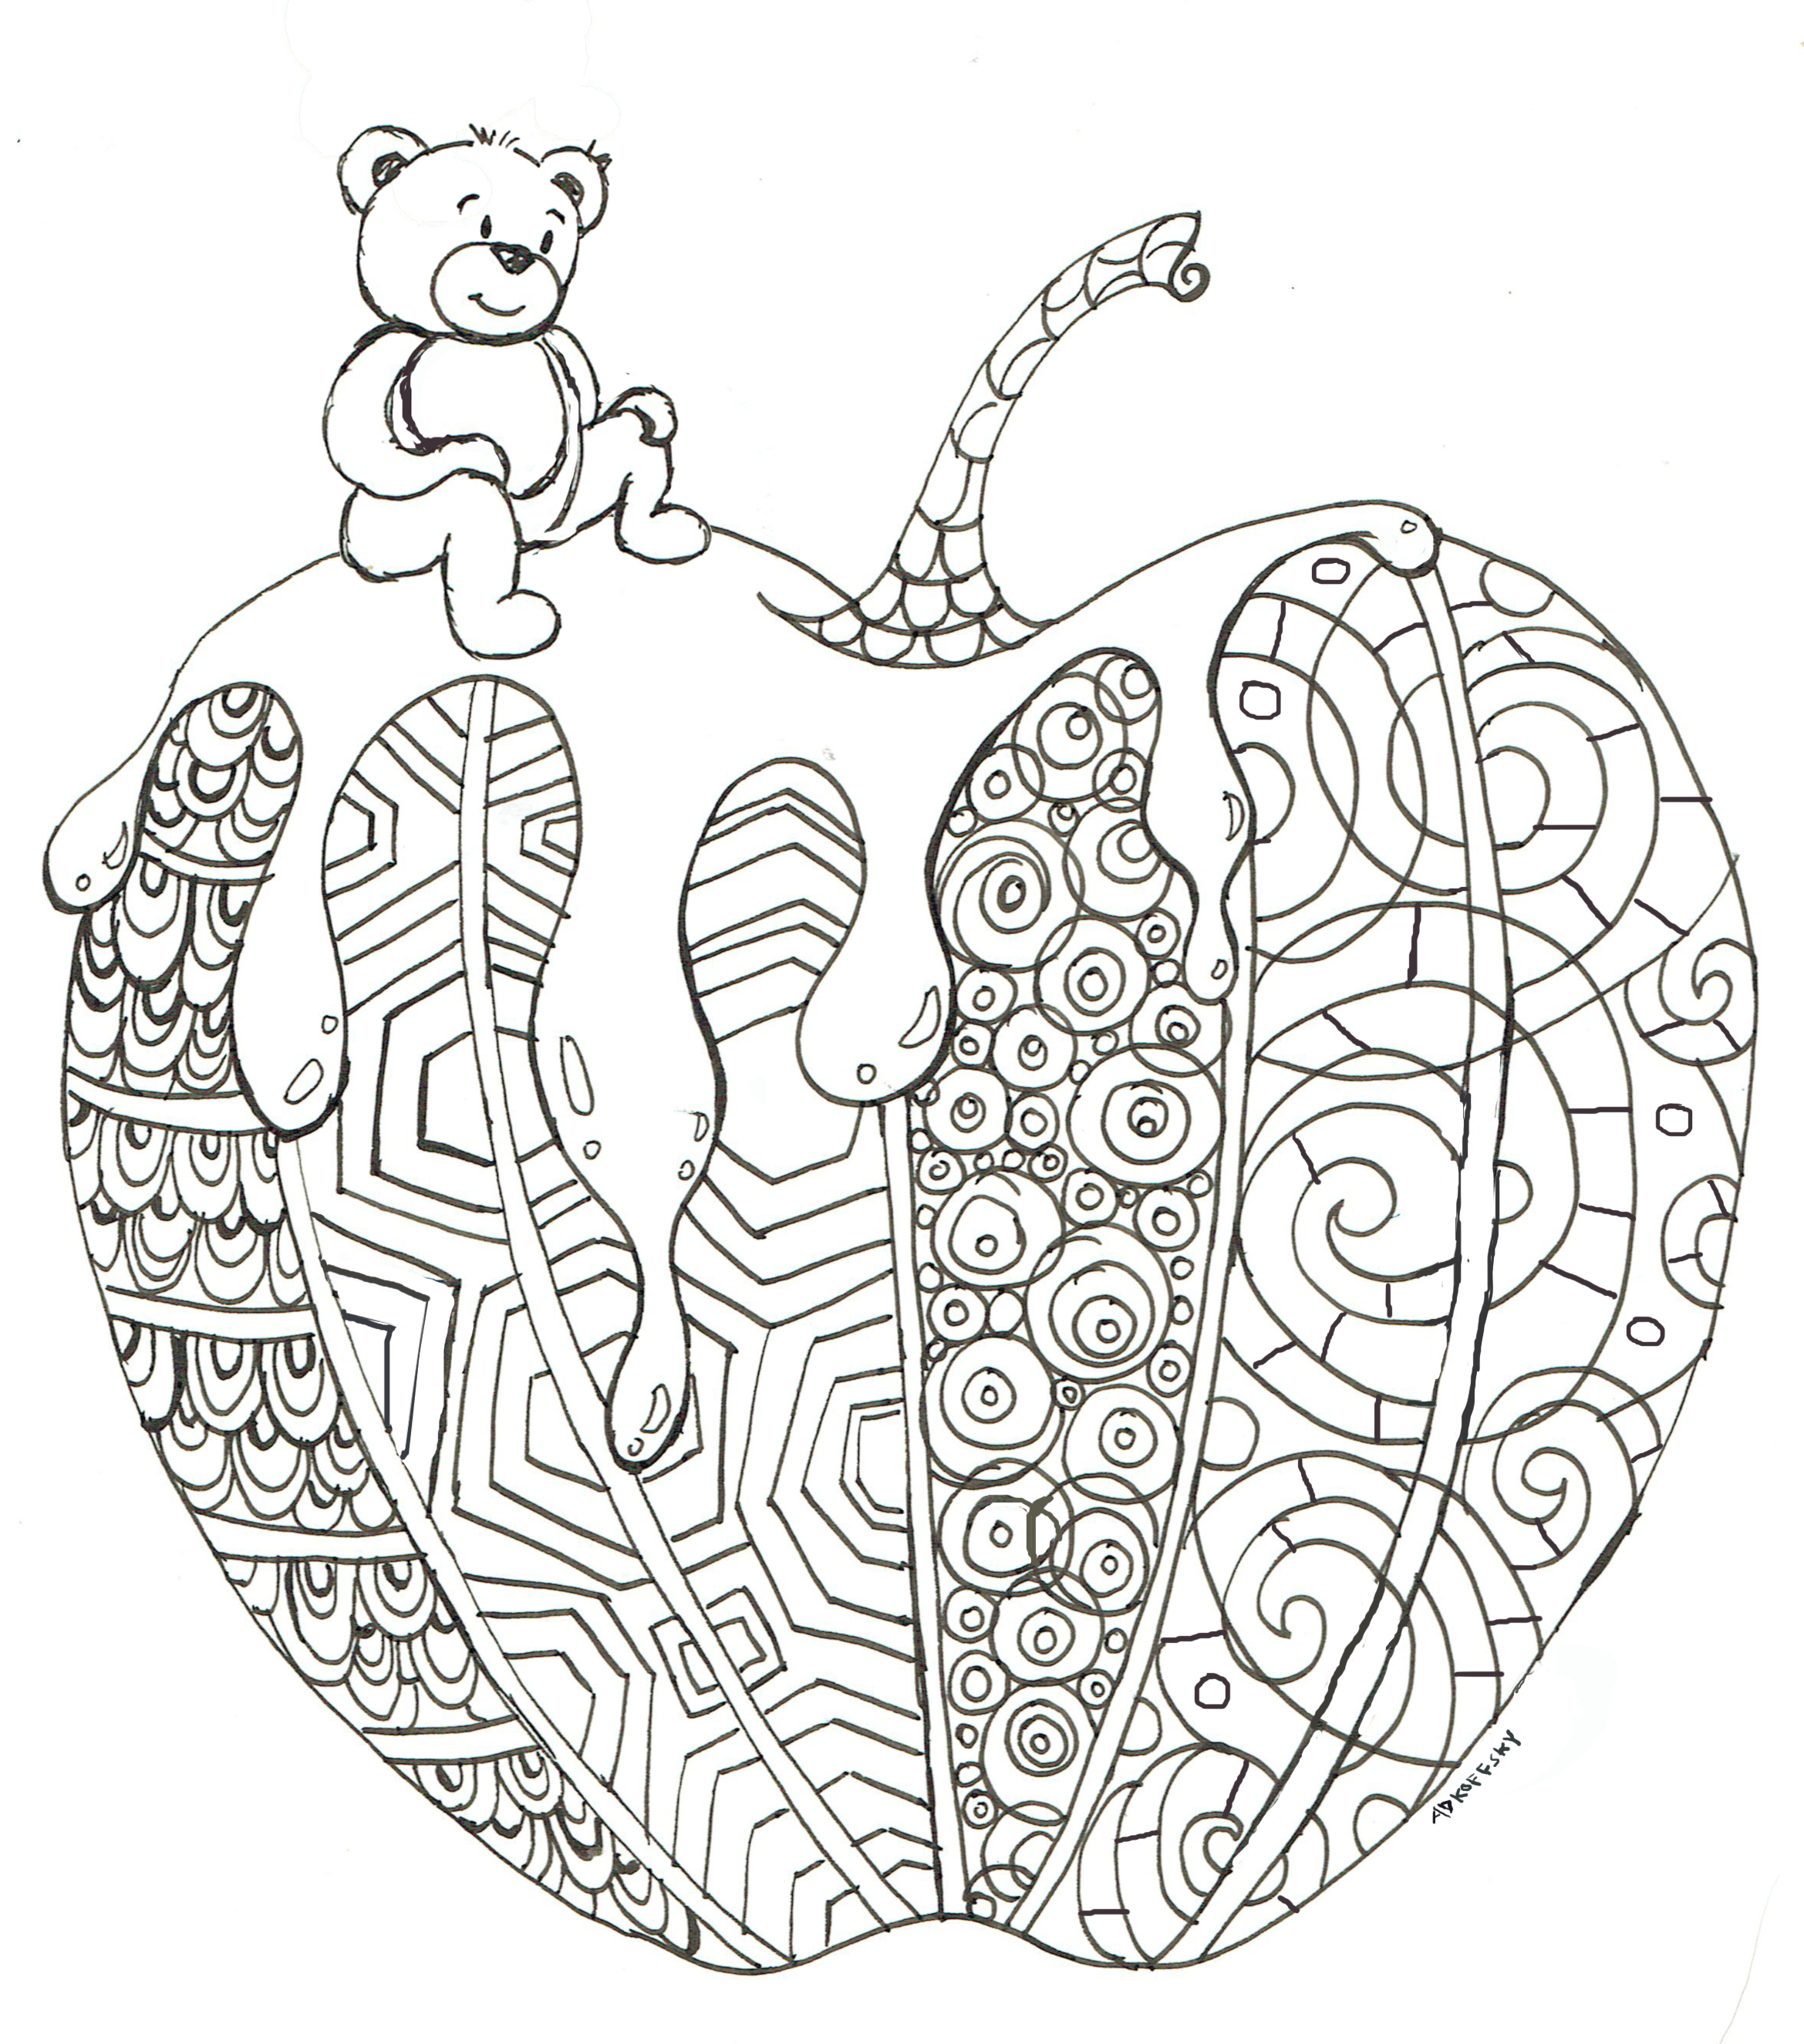 New coloring page for the New Year